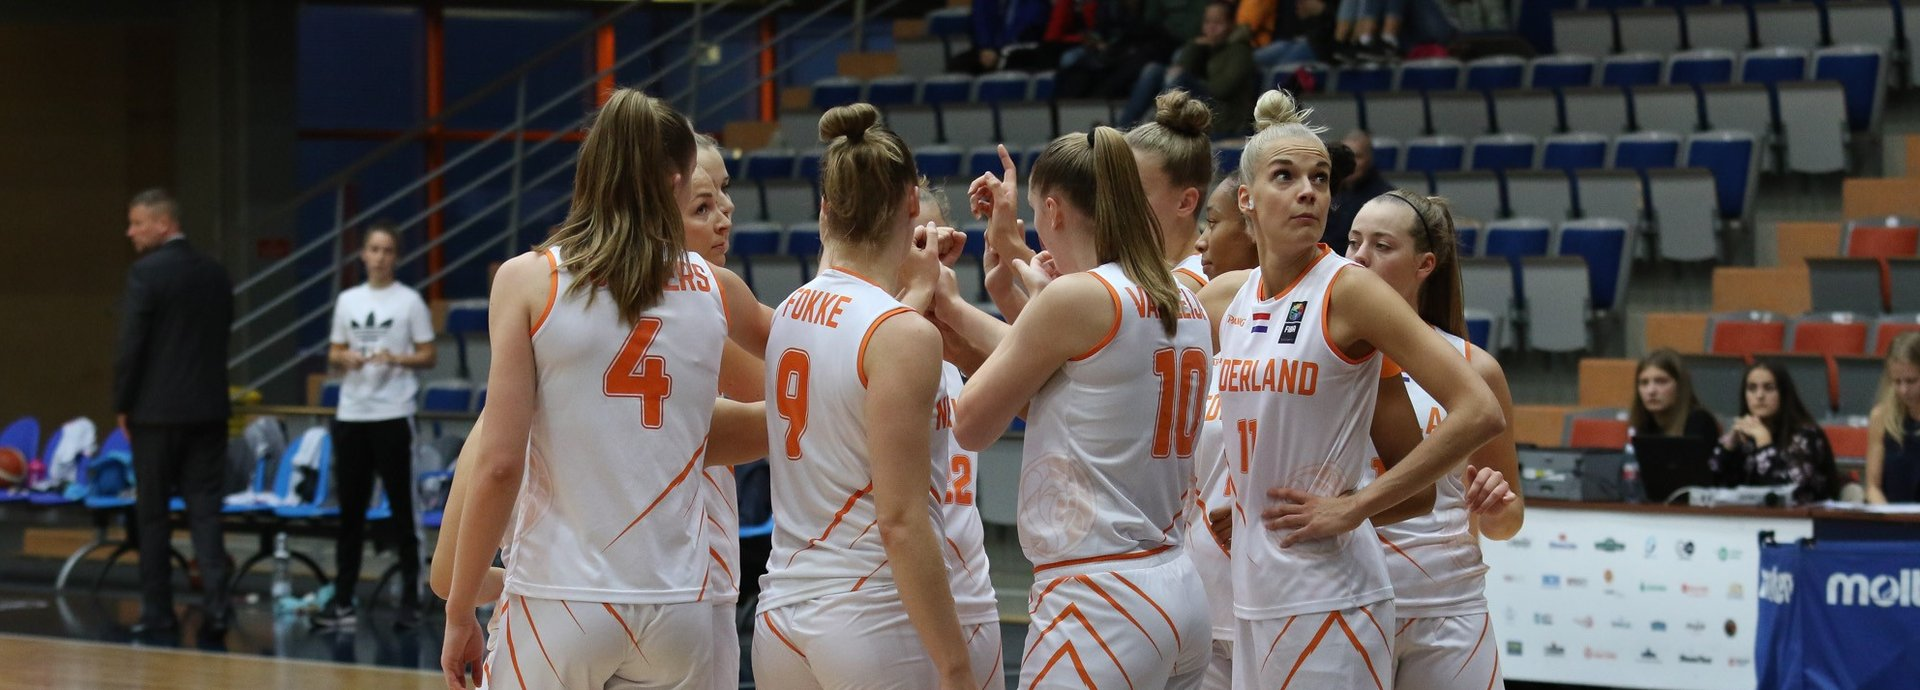 2019_Orange Lions_Vrouwen_EWBL_Huddle